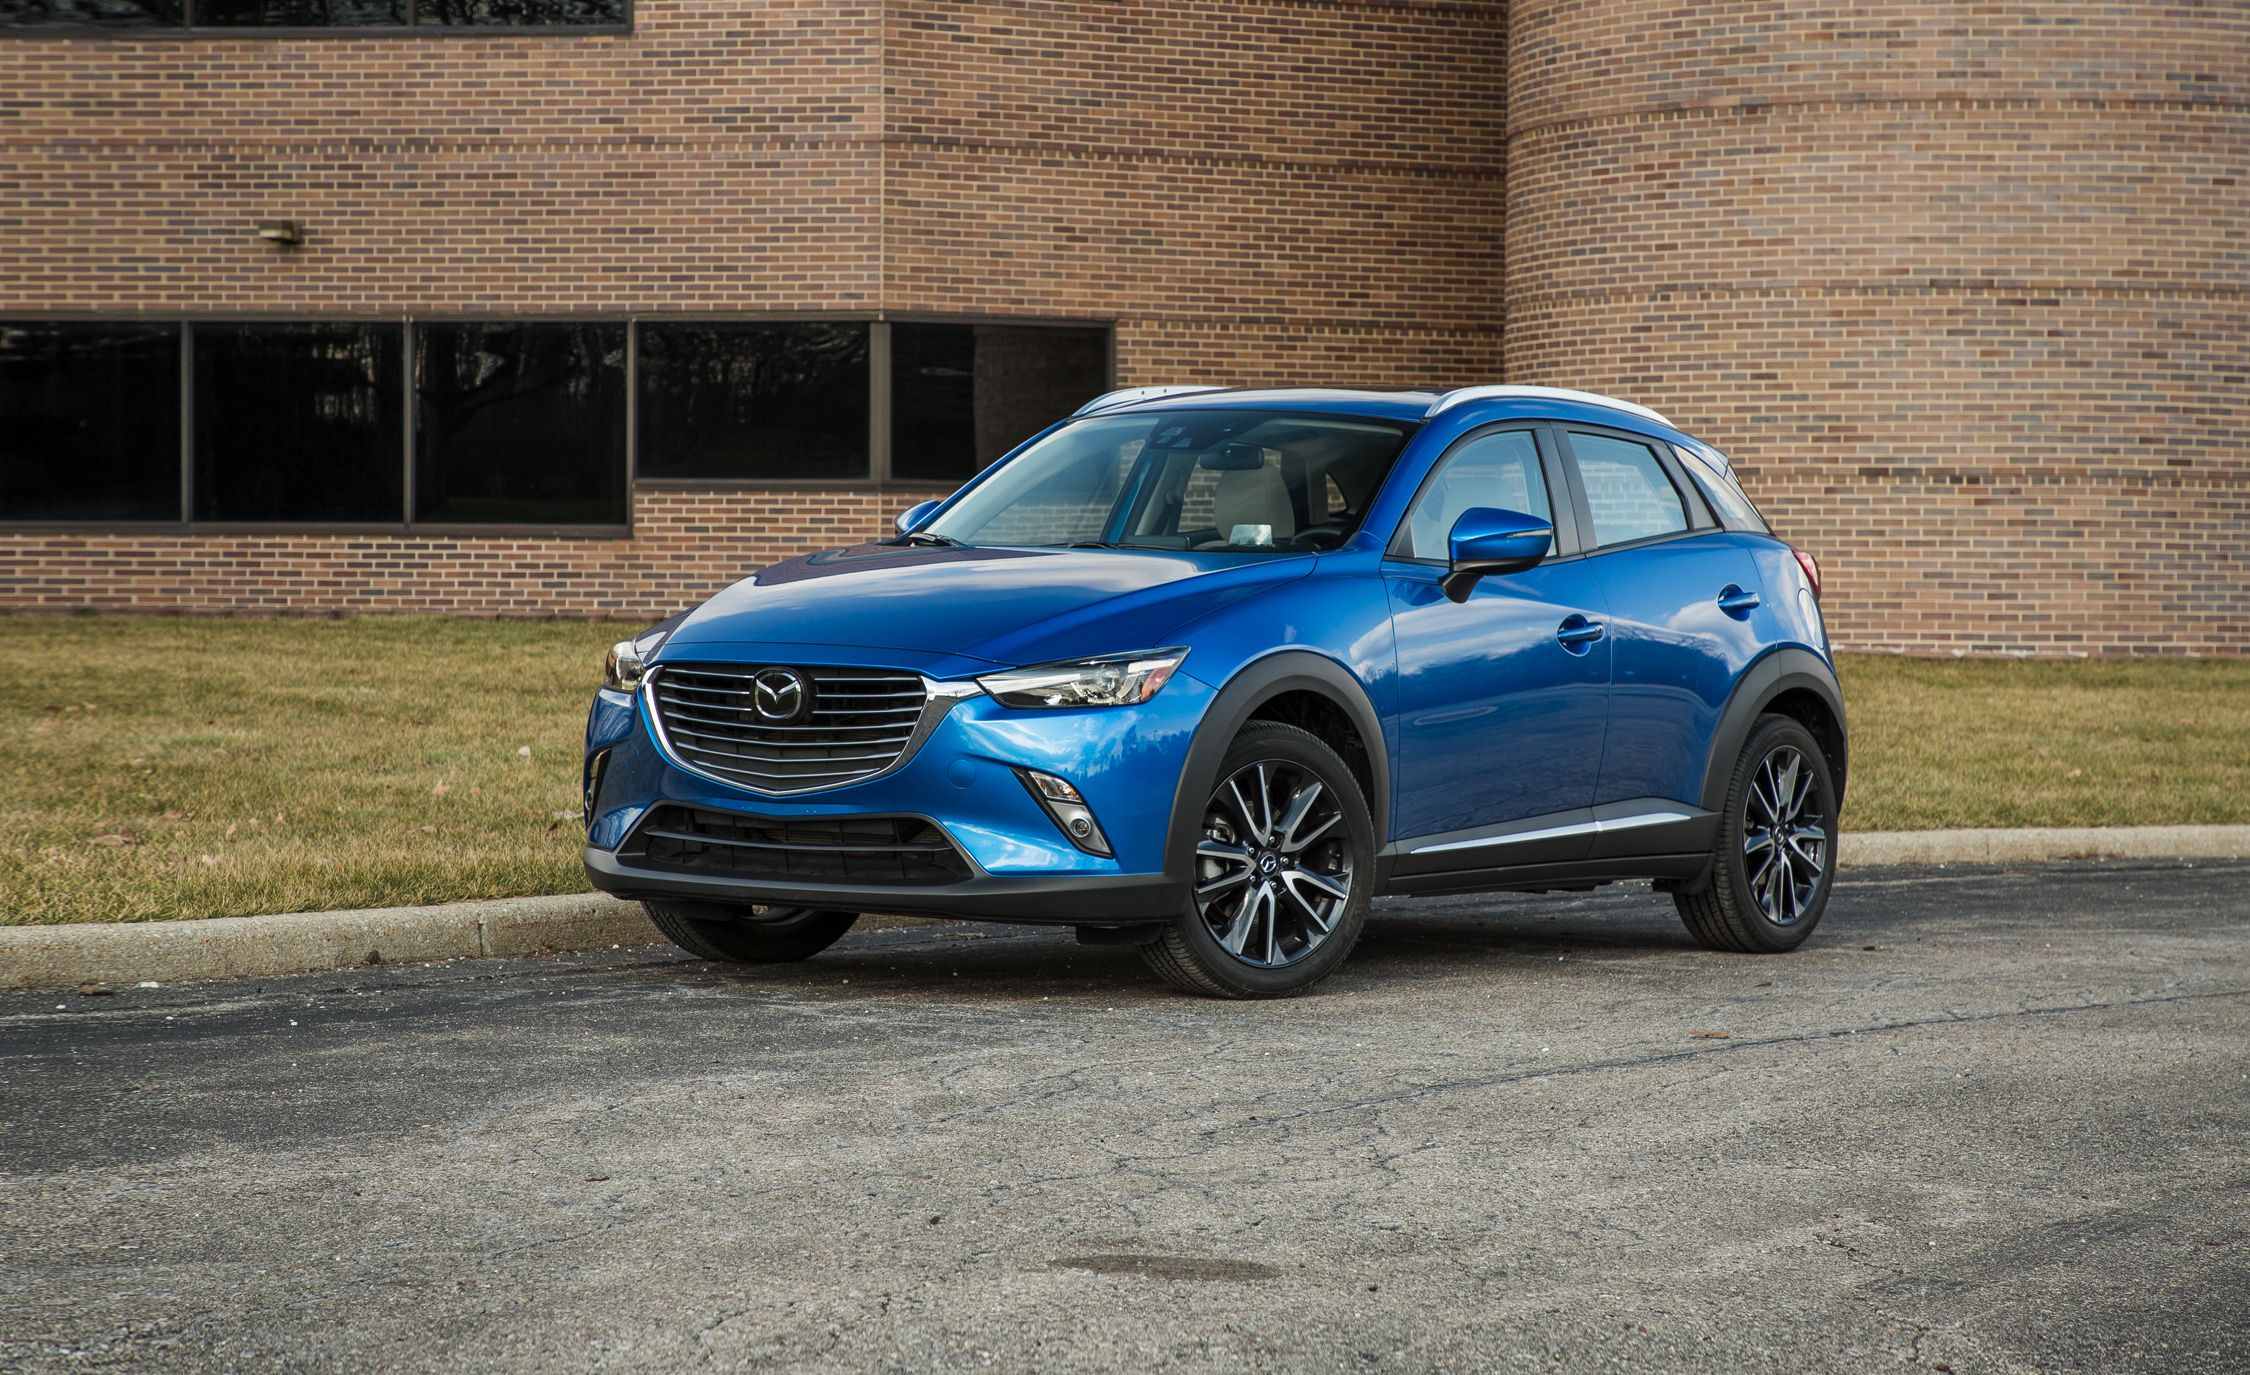 2018 mazda cx 3 exterior review car and driver. Black Bedroom Furniture Sets. Home Design Ideas